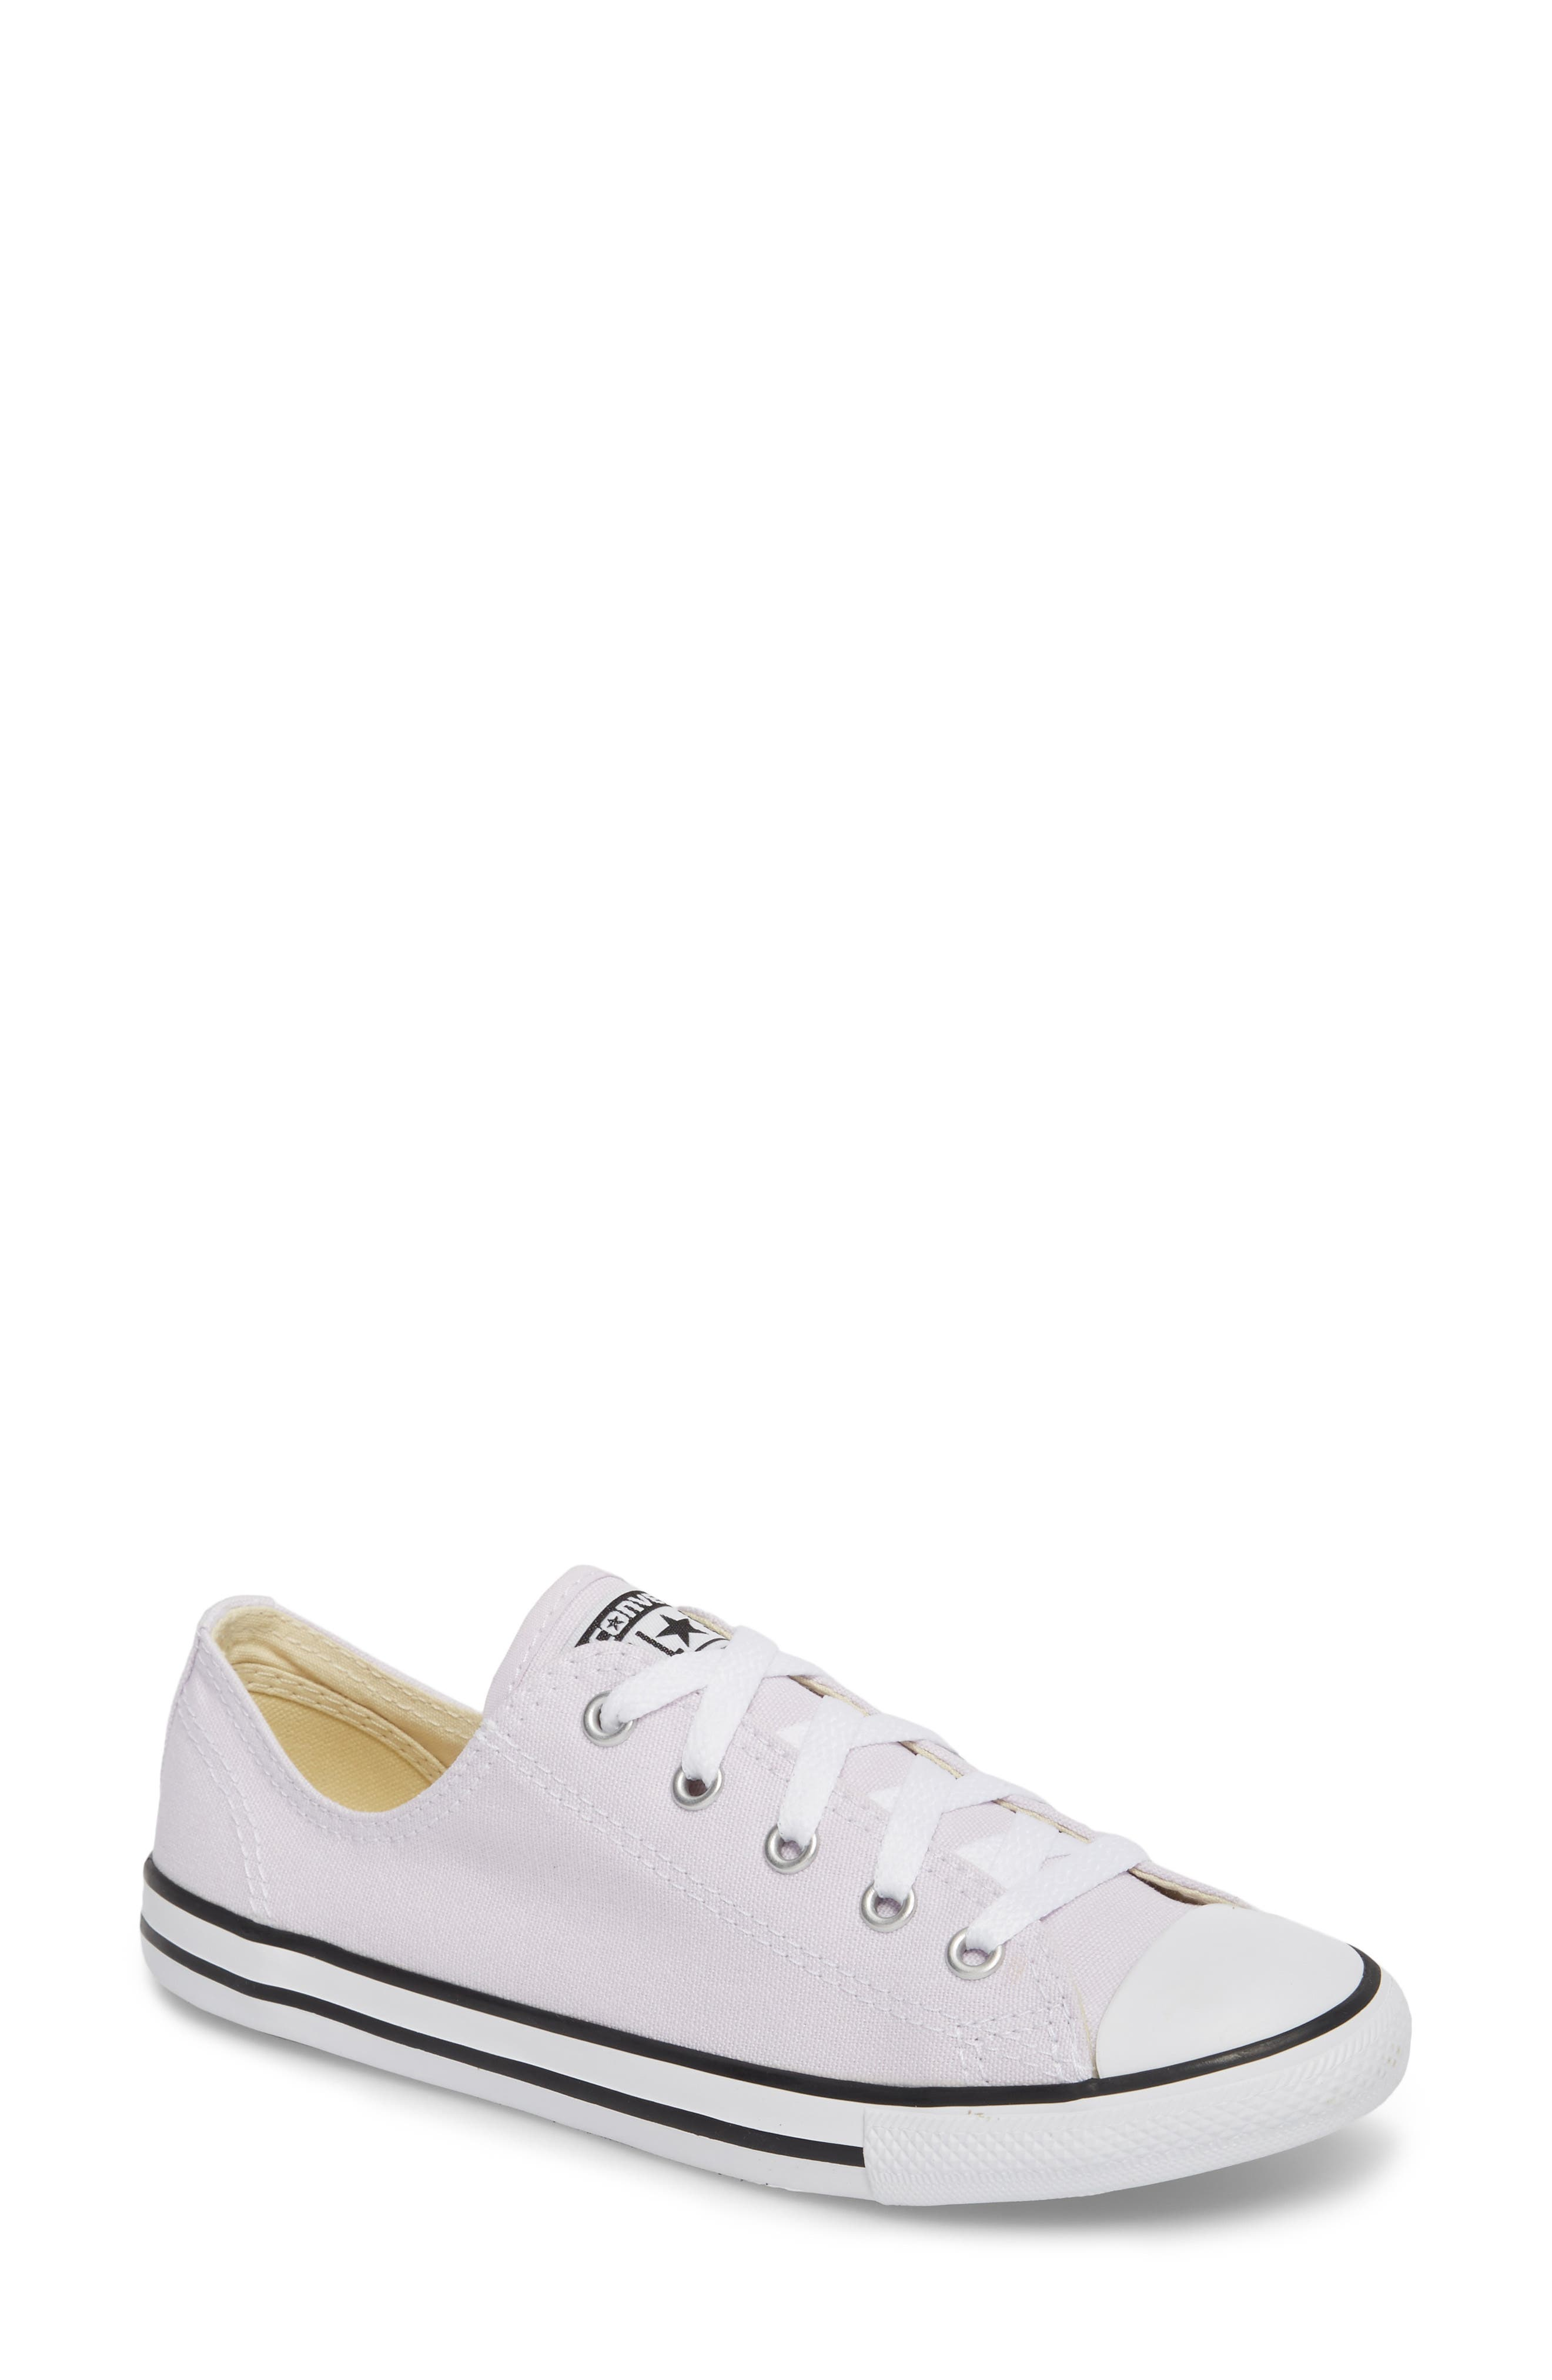 Alternate Image 1 Selected - Converse Chuck Taylor® All Star® Dainty Ox Low Top Sneaker (Women)